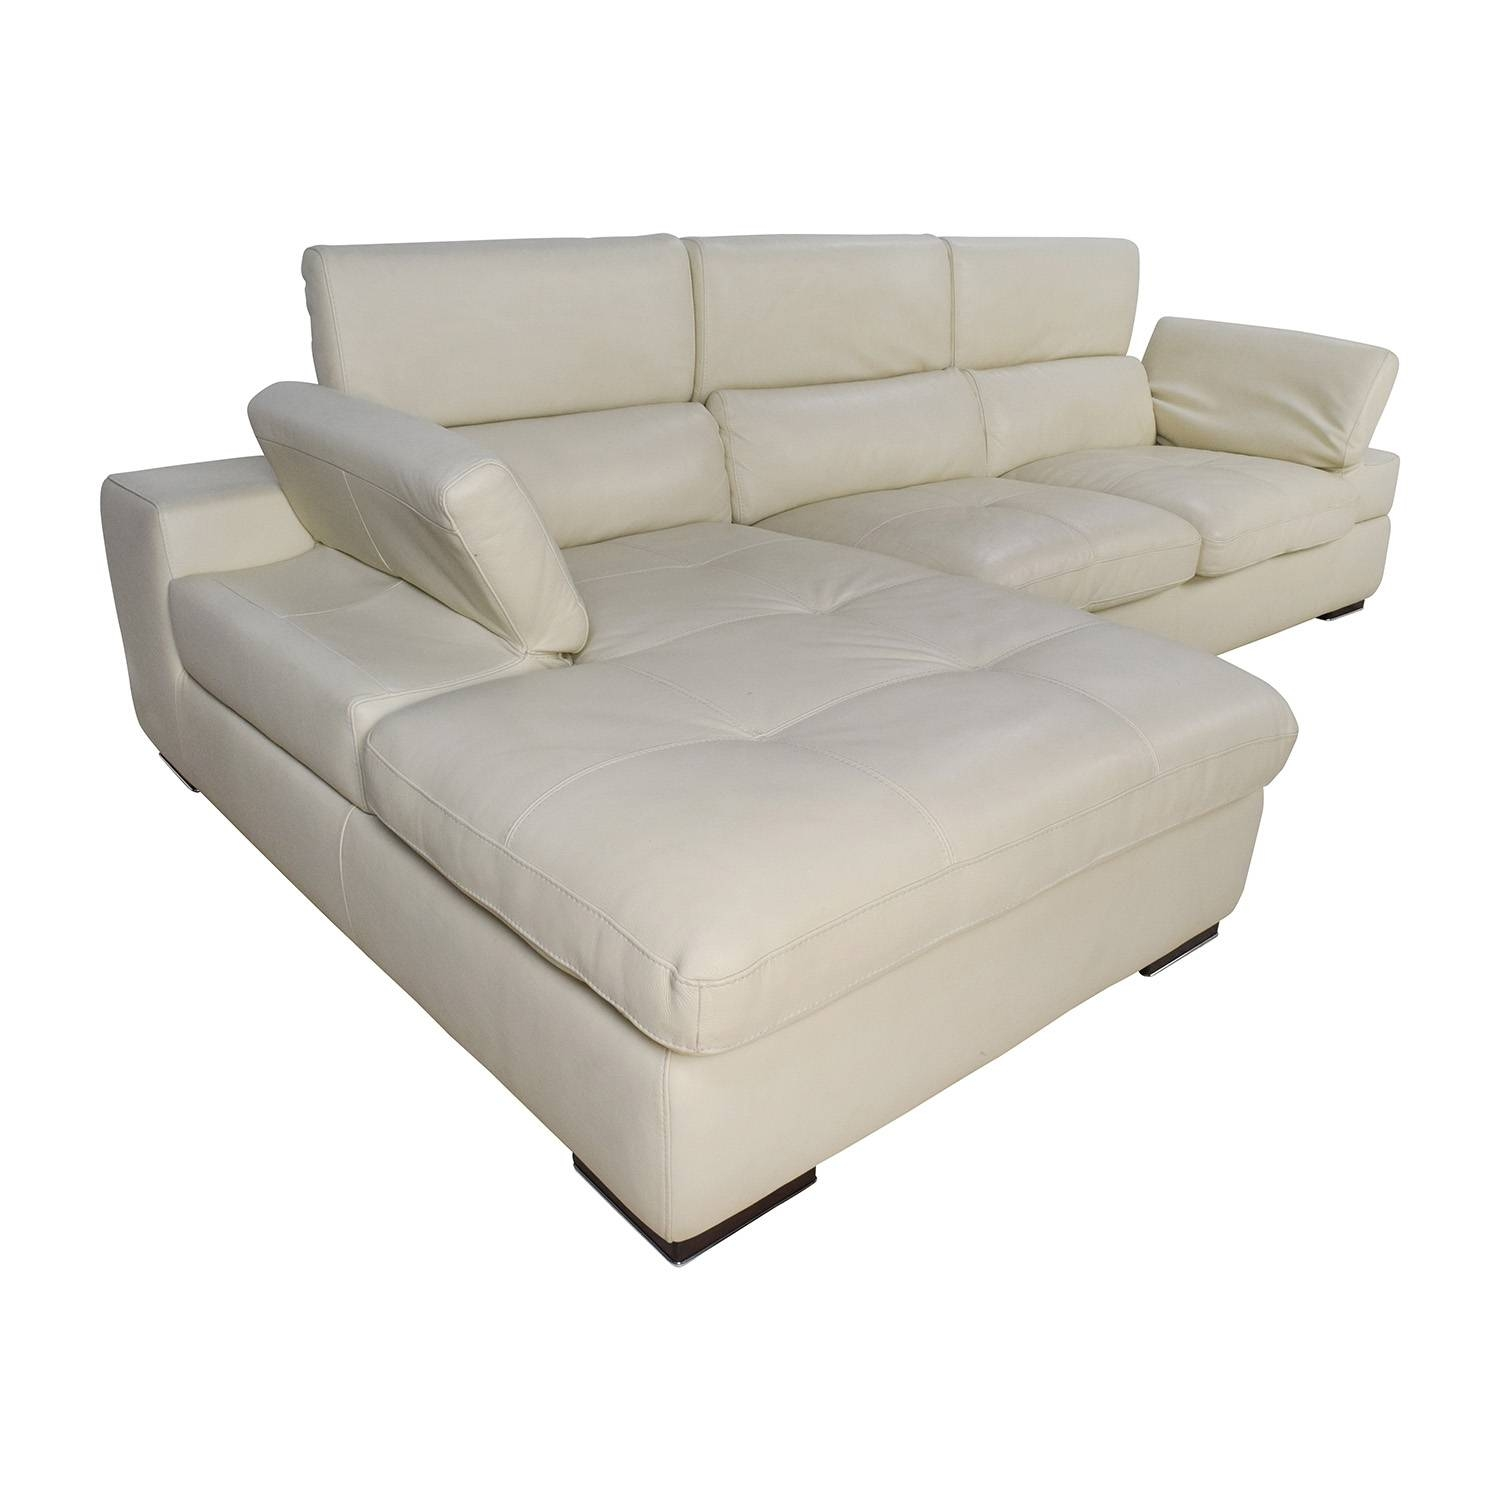 Bloomingdale's White Leather Sofa • Leather Sofa intended for Bloomingdales Sofas (Image 11 of 15)